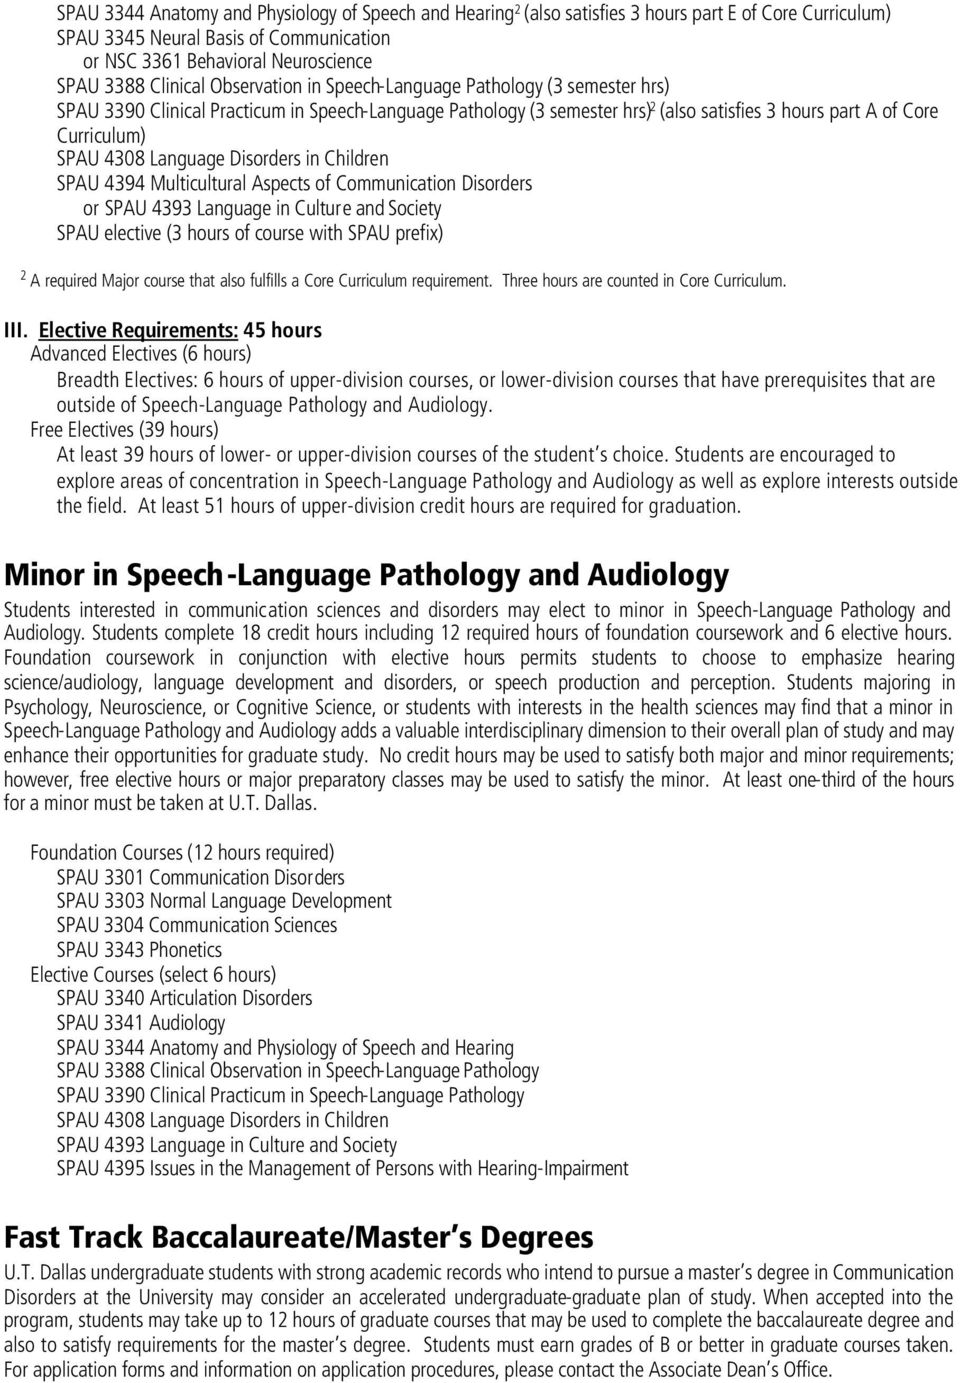 4308 Language Disorders in Children SPAU 4394 Multicultural Aspects of Communication Disorders or SPAU 4393 Language in Culture and Society SPAU elective (3 hours of course with SPAU prefix) 2 A